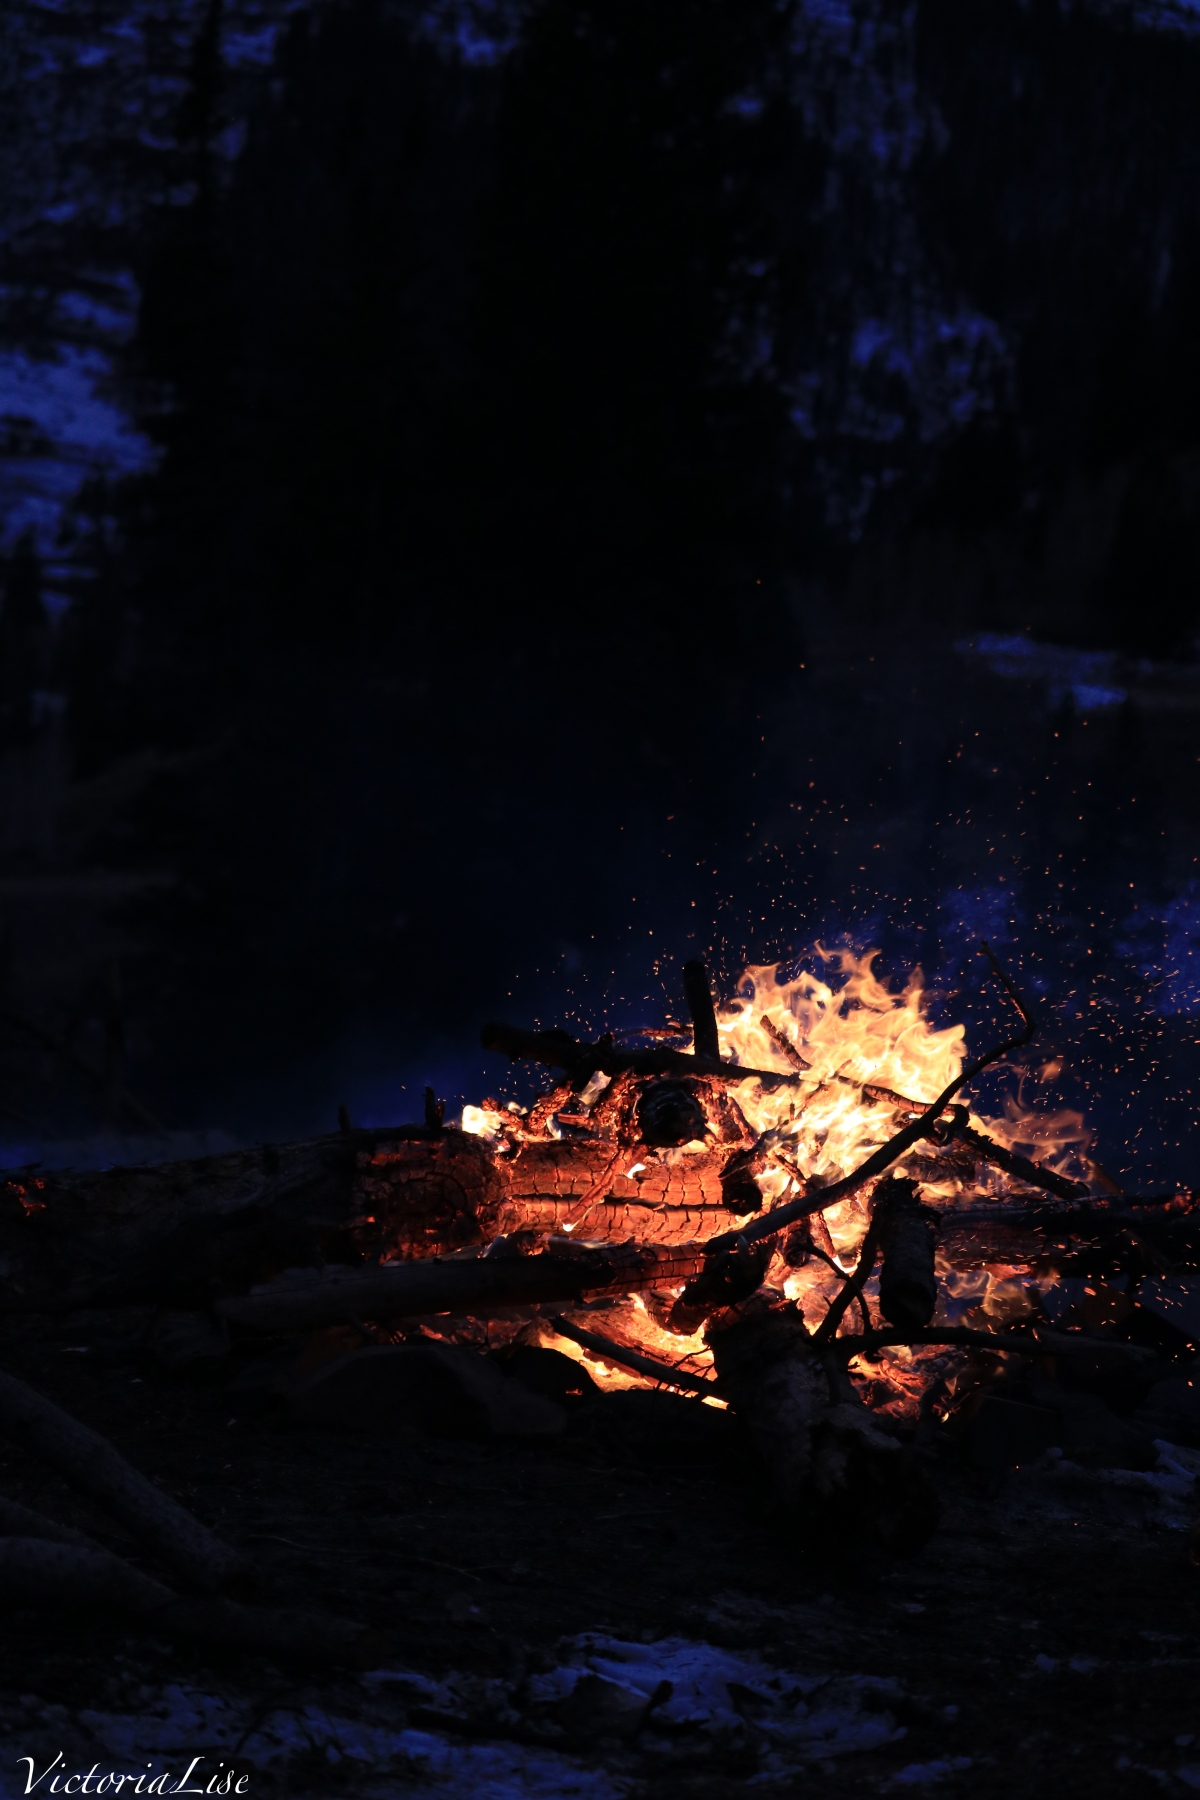 Campfire, Rocky Mountain Style. ©Victoria Lise 2017.